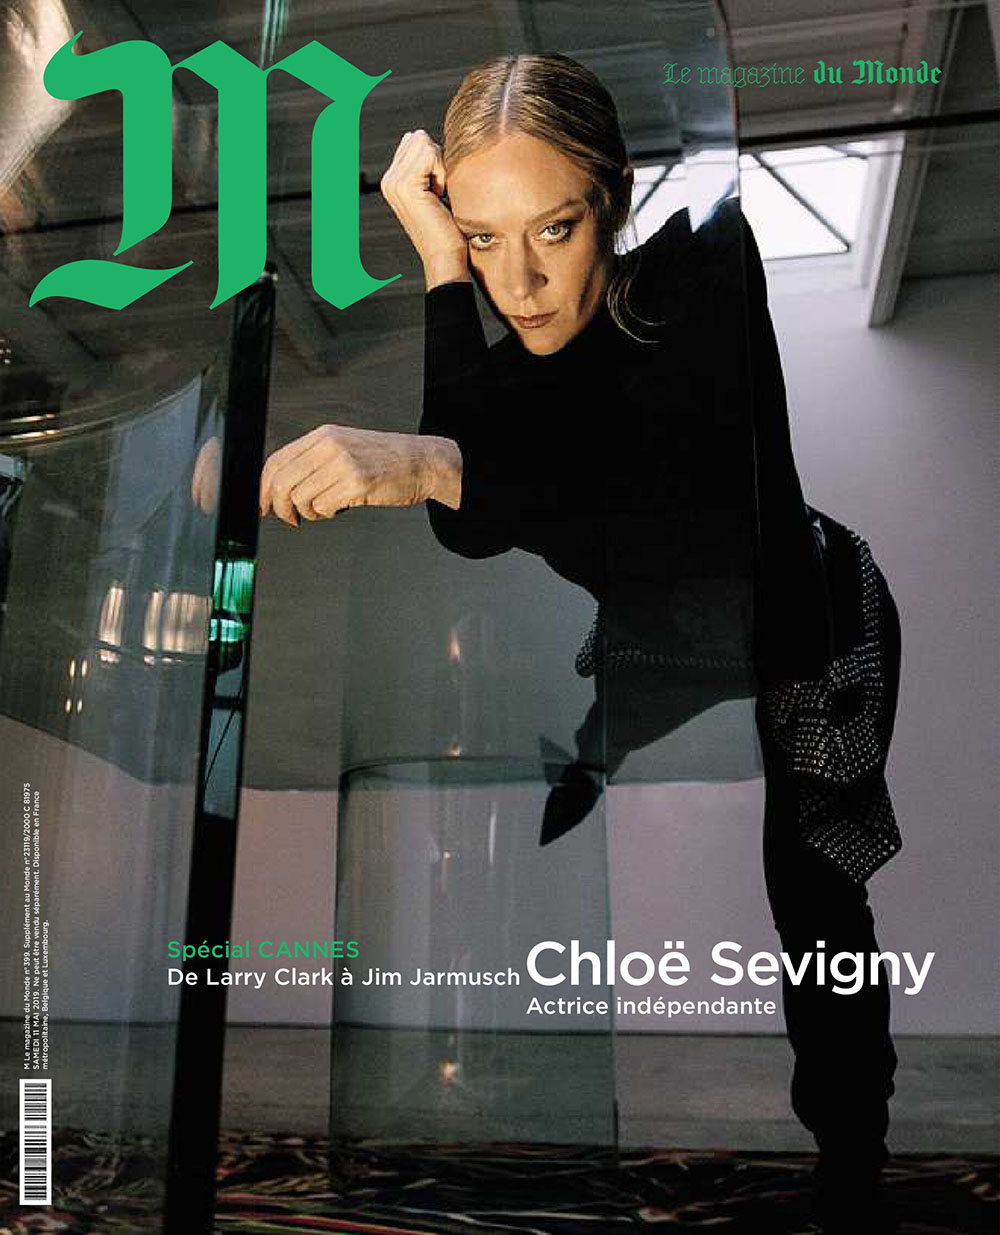 Chloë Sevigny covers M Le magazine du Monde May 11th, 2019 by Brianna Capozzi